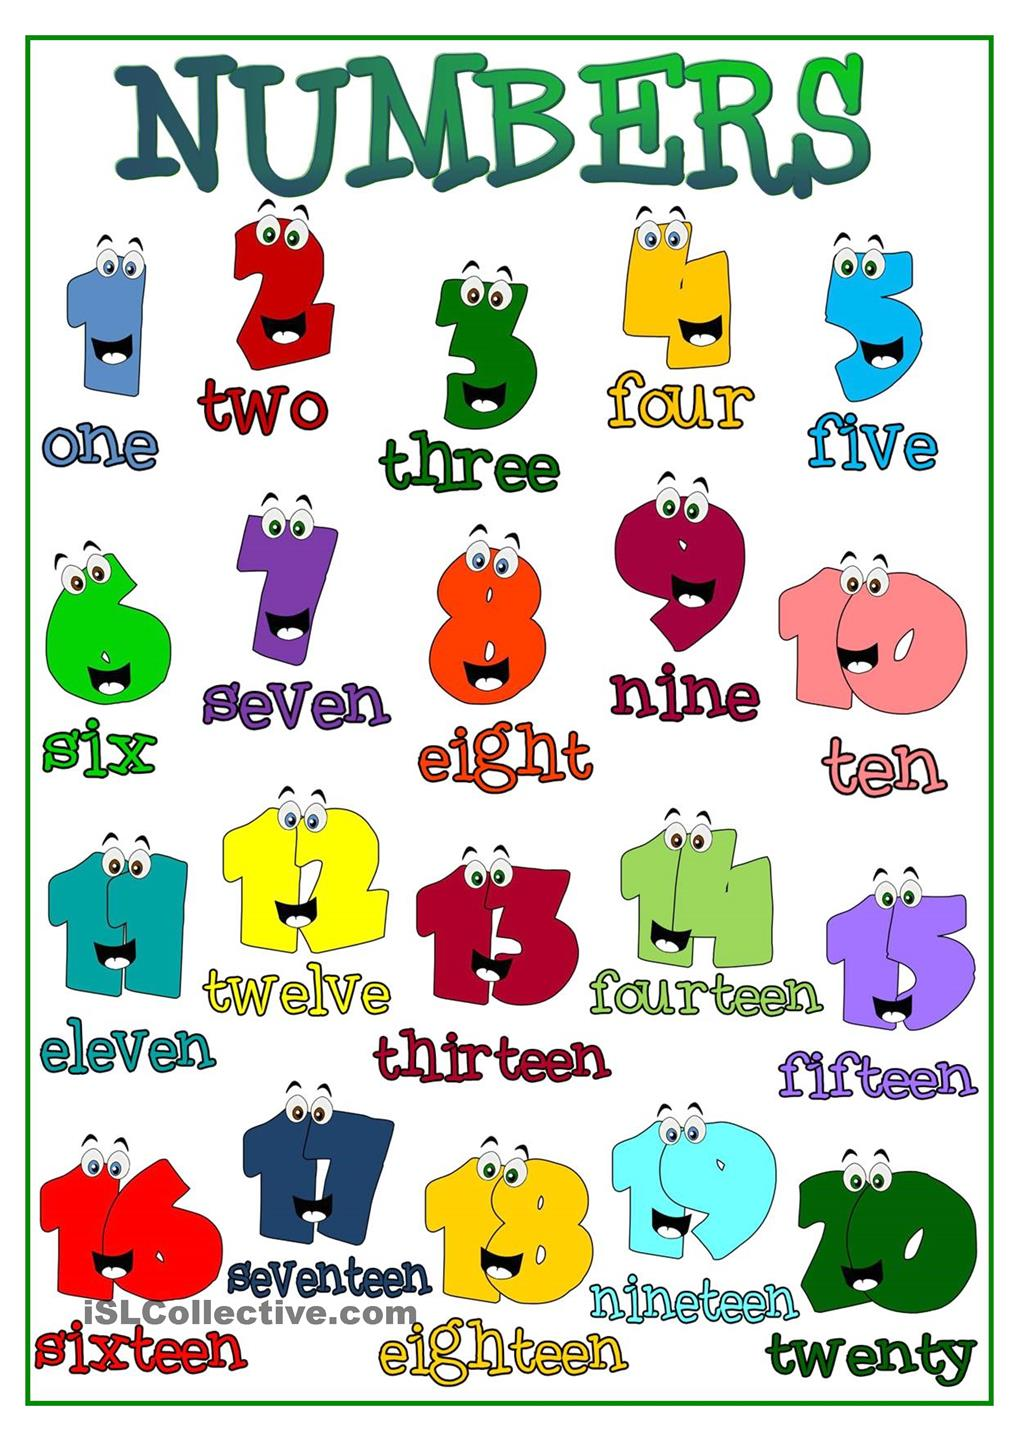 Numbers - Plurals | our english class